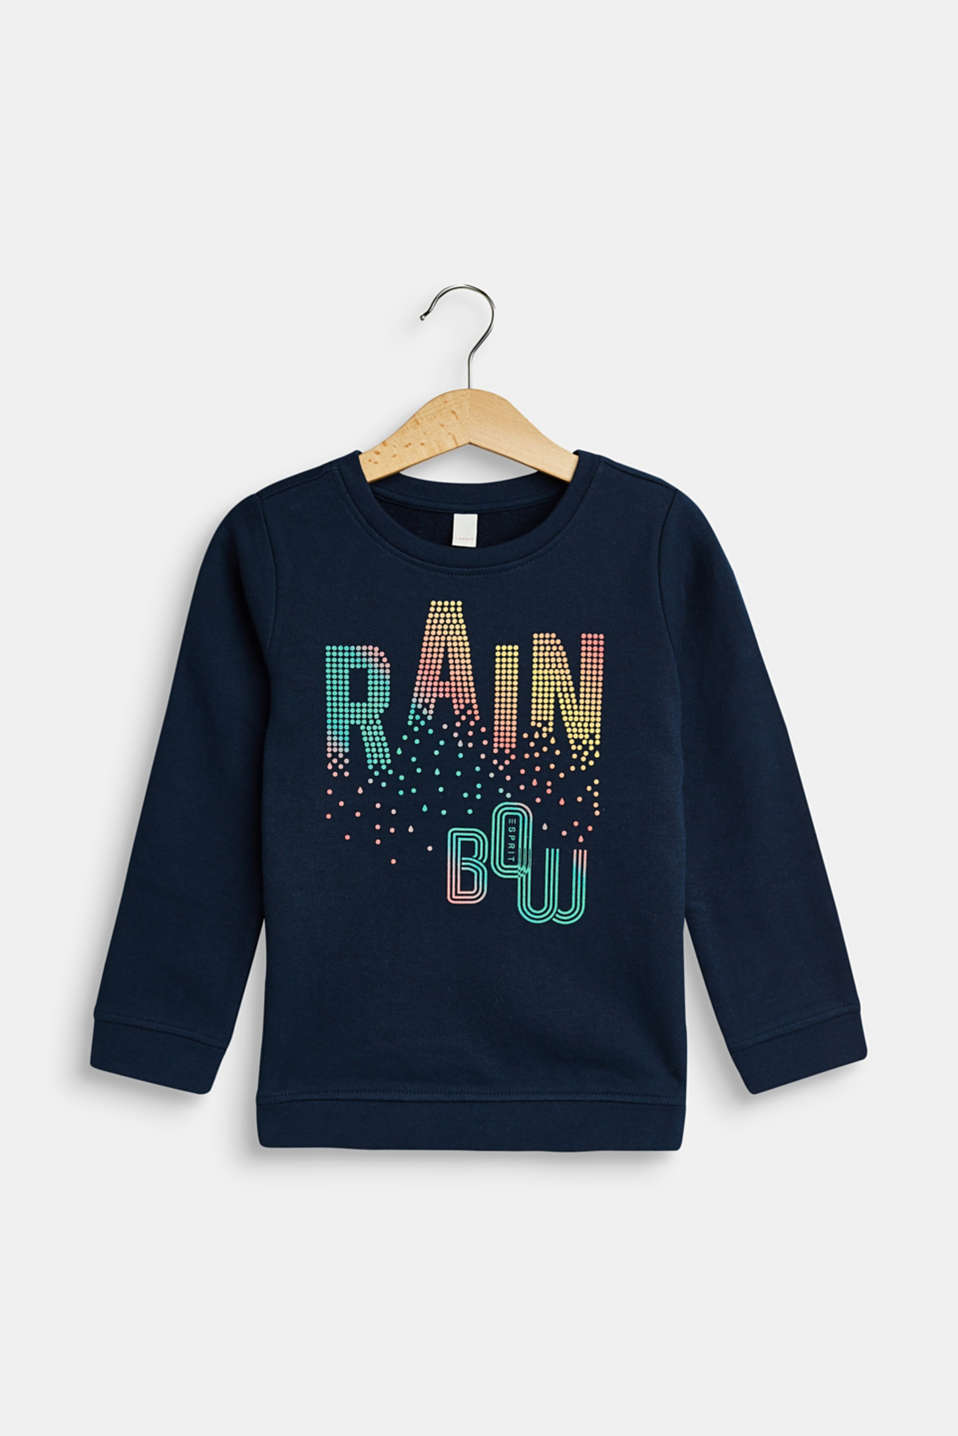 Esprit - Sweatshirt with colourful print, 100% cotton